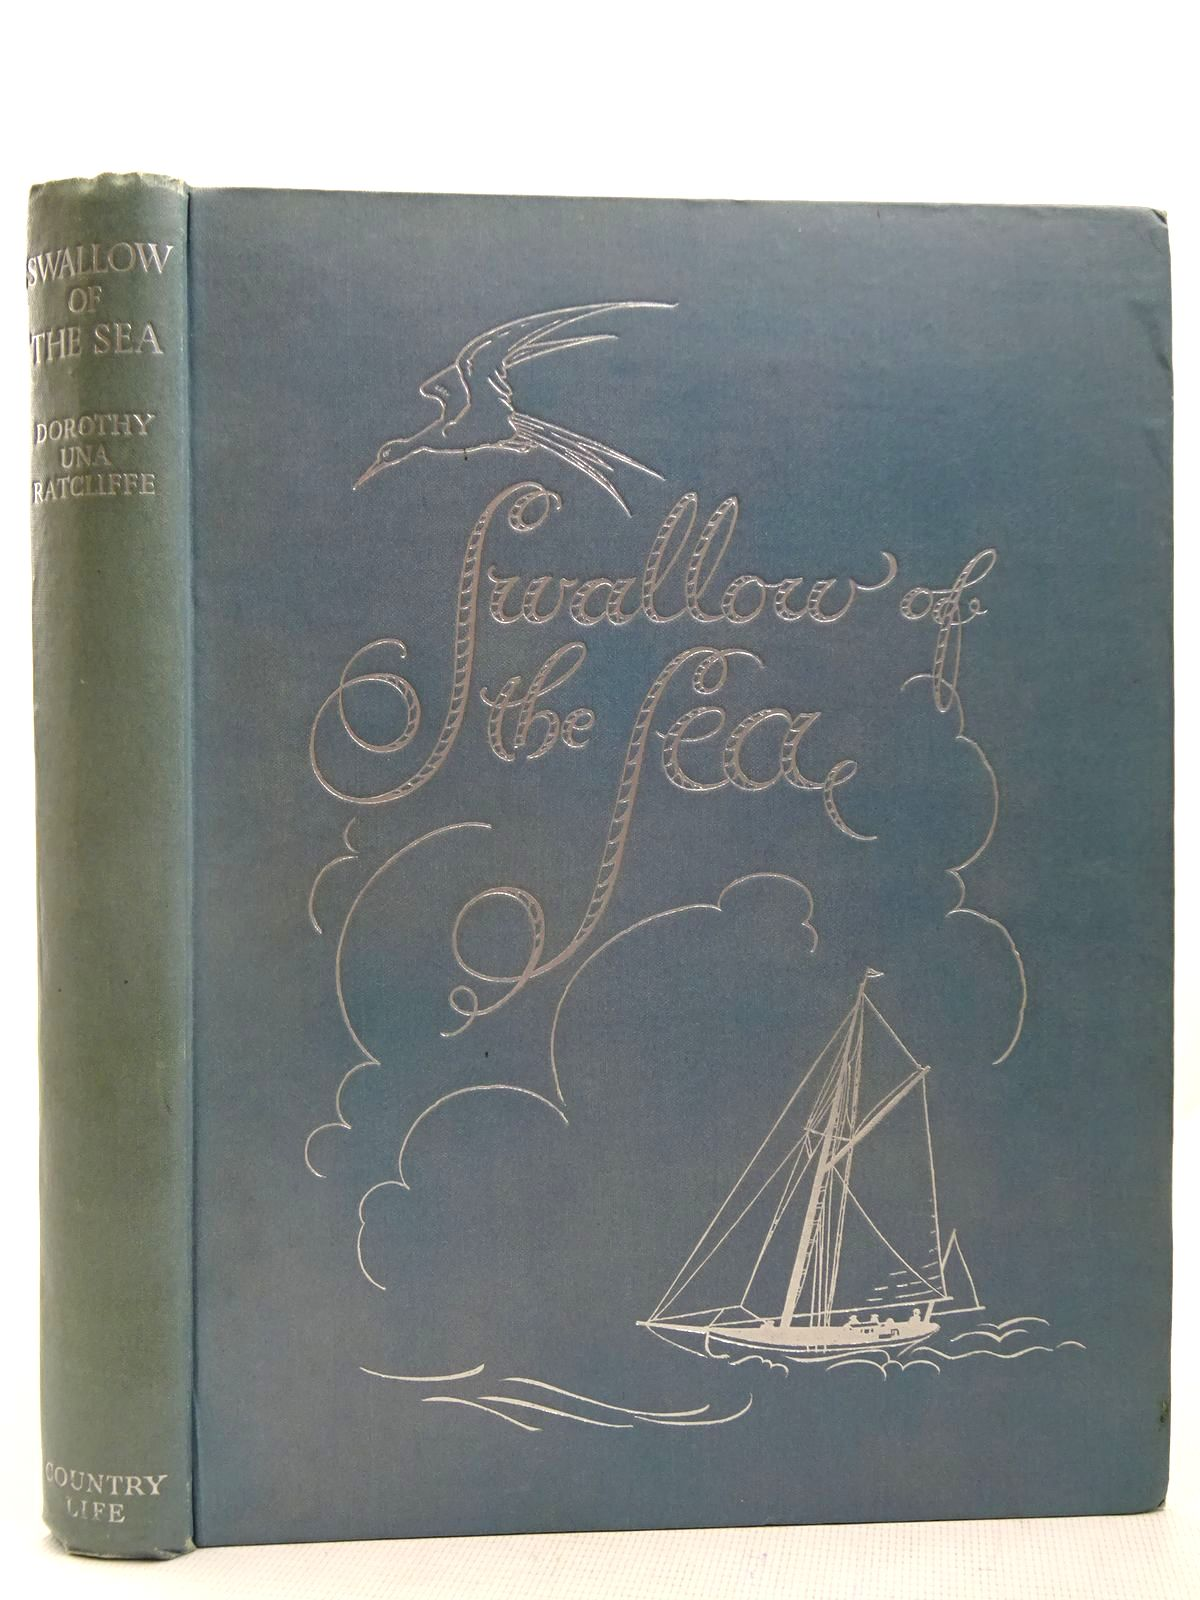 Photo of SWALLOW OF THE SEA written by Ratcliffe, Dorothy Una illustrated by Dobson, Margaret published by Country Life Limited (STOCK CODE: 2127829)  for sale by Stella & Rose's Books